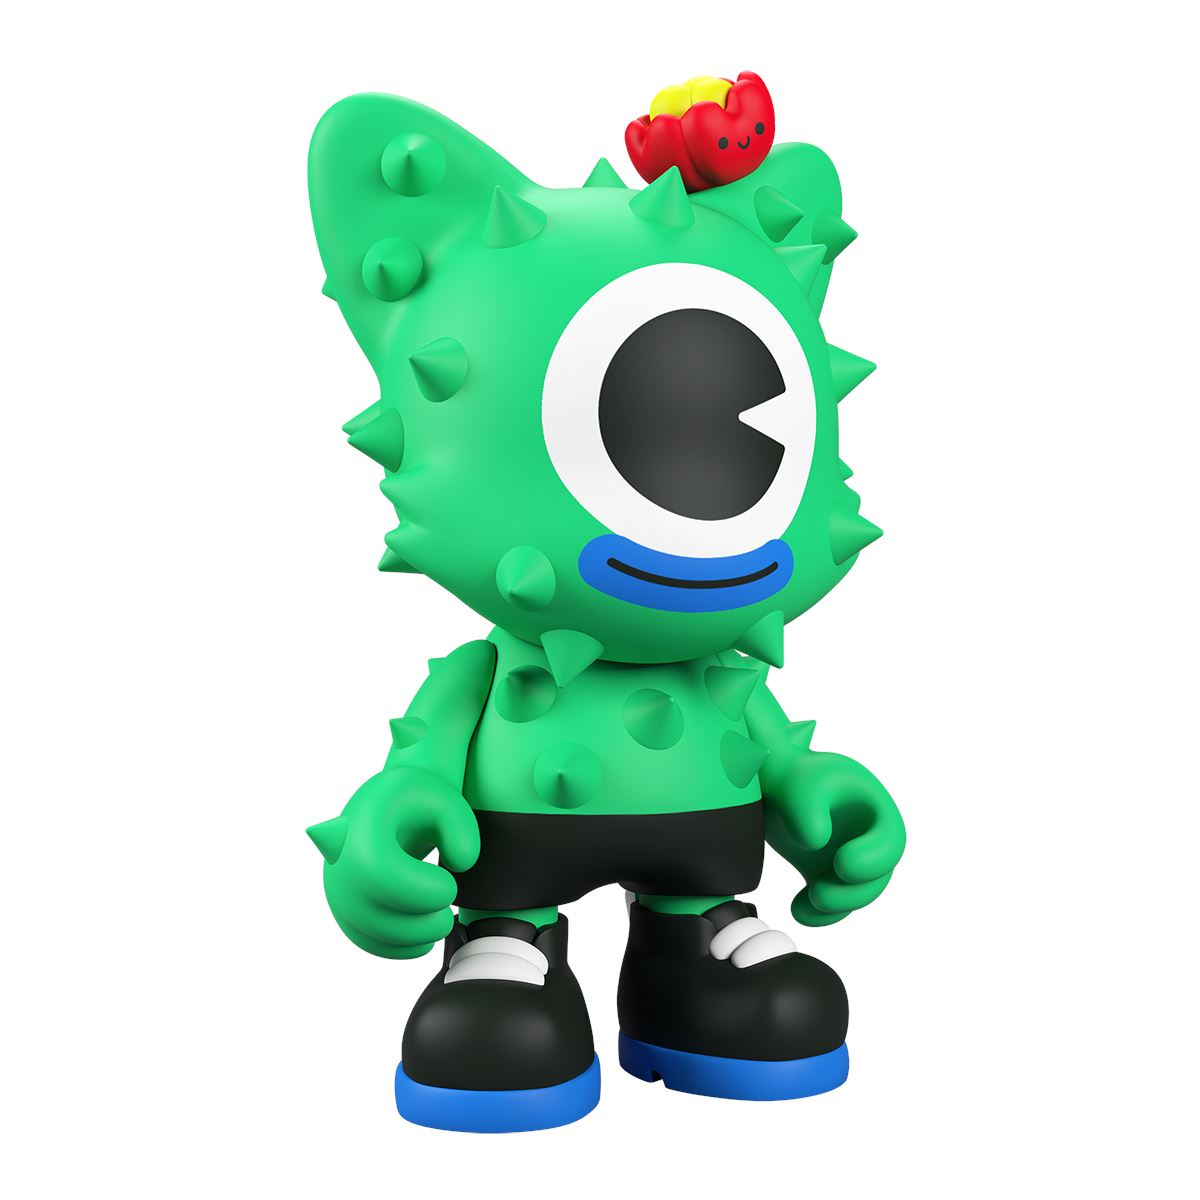 Nopalito SuperJanky by EGC & Superplastic 8-inch Vinyl Toy Superplastic